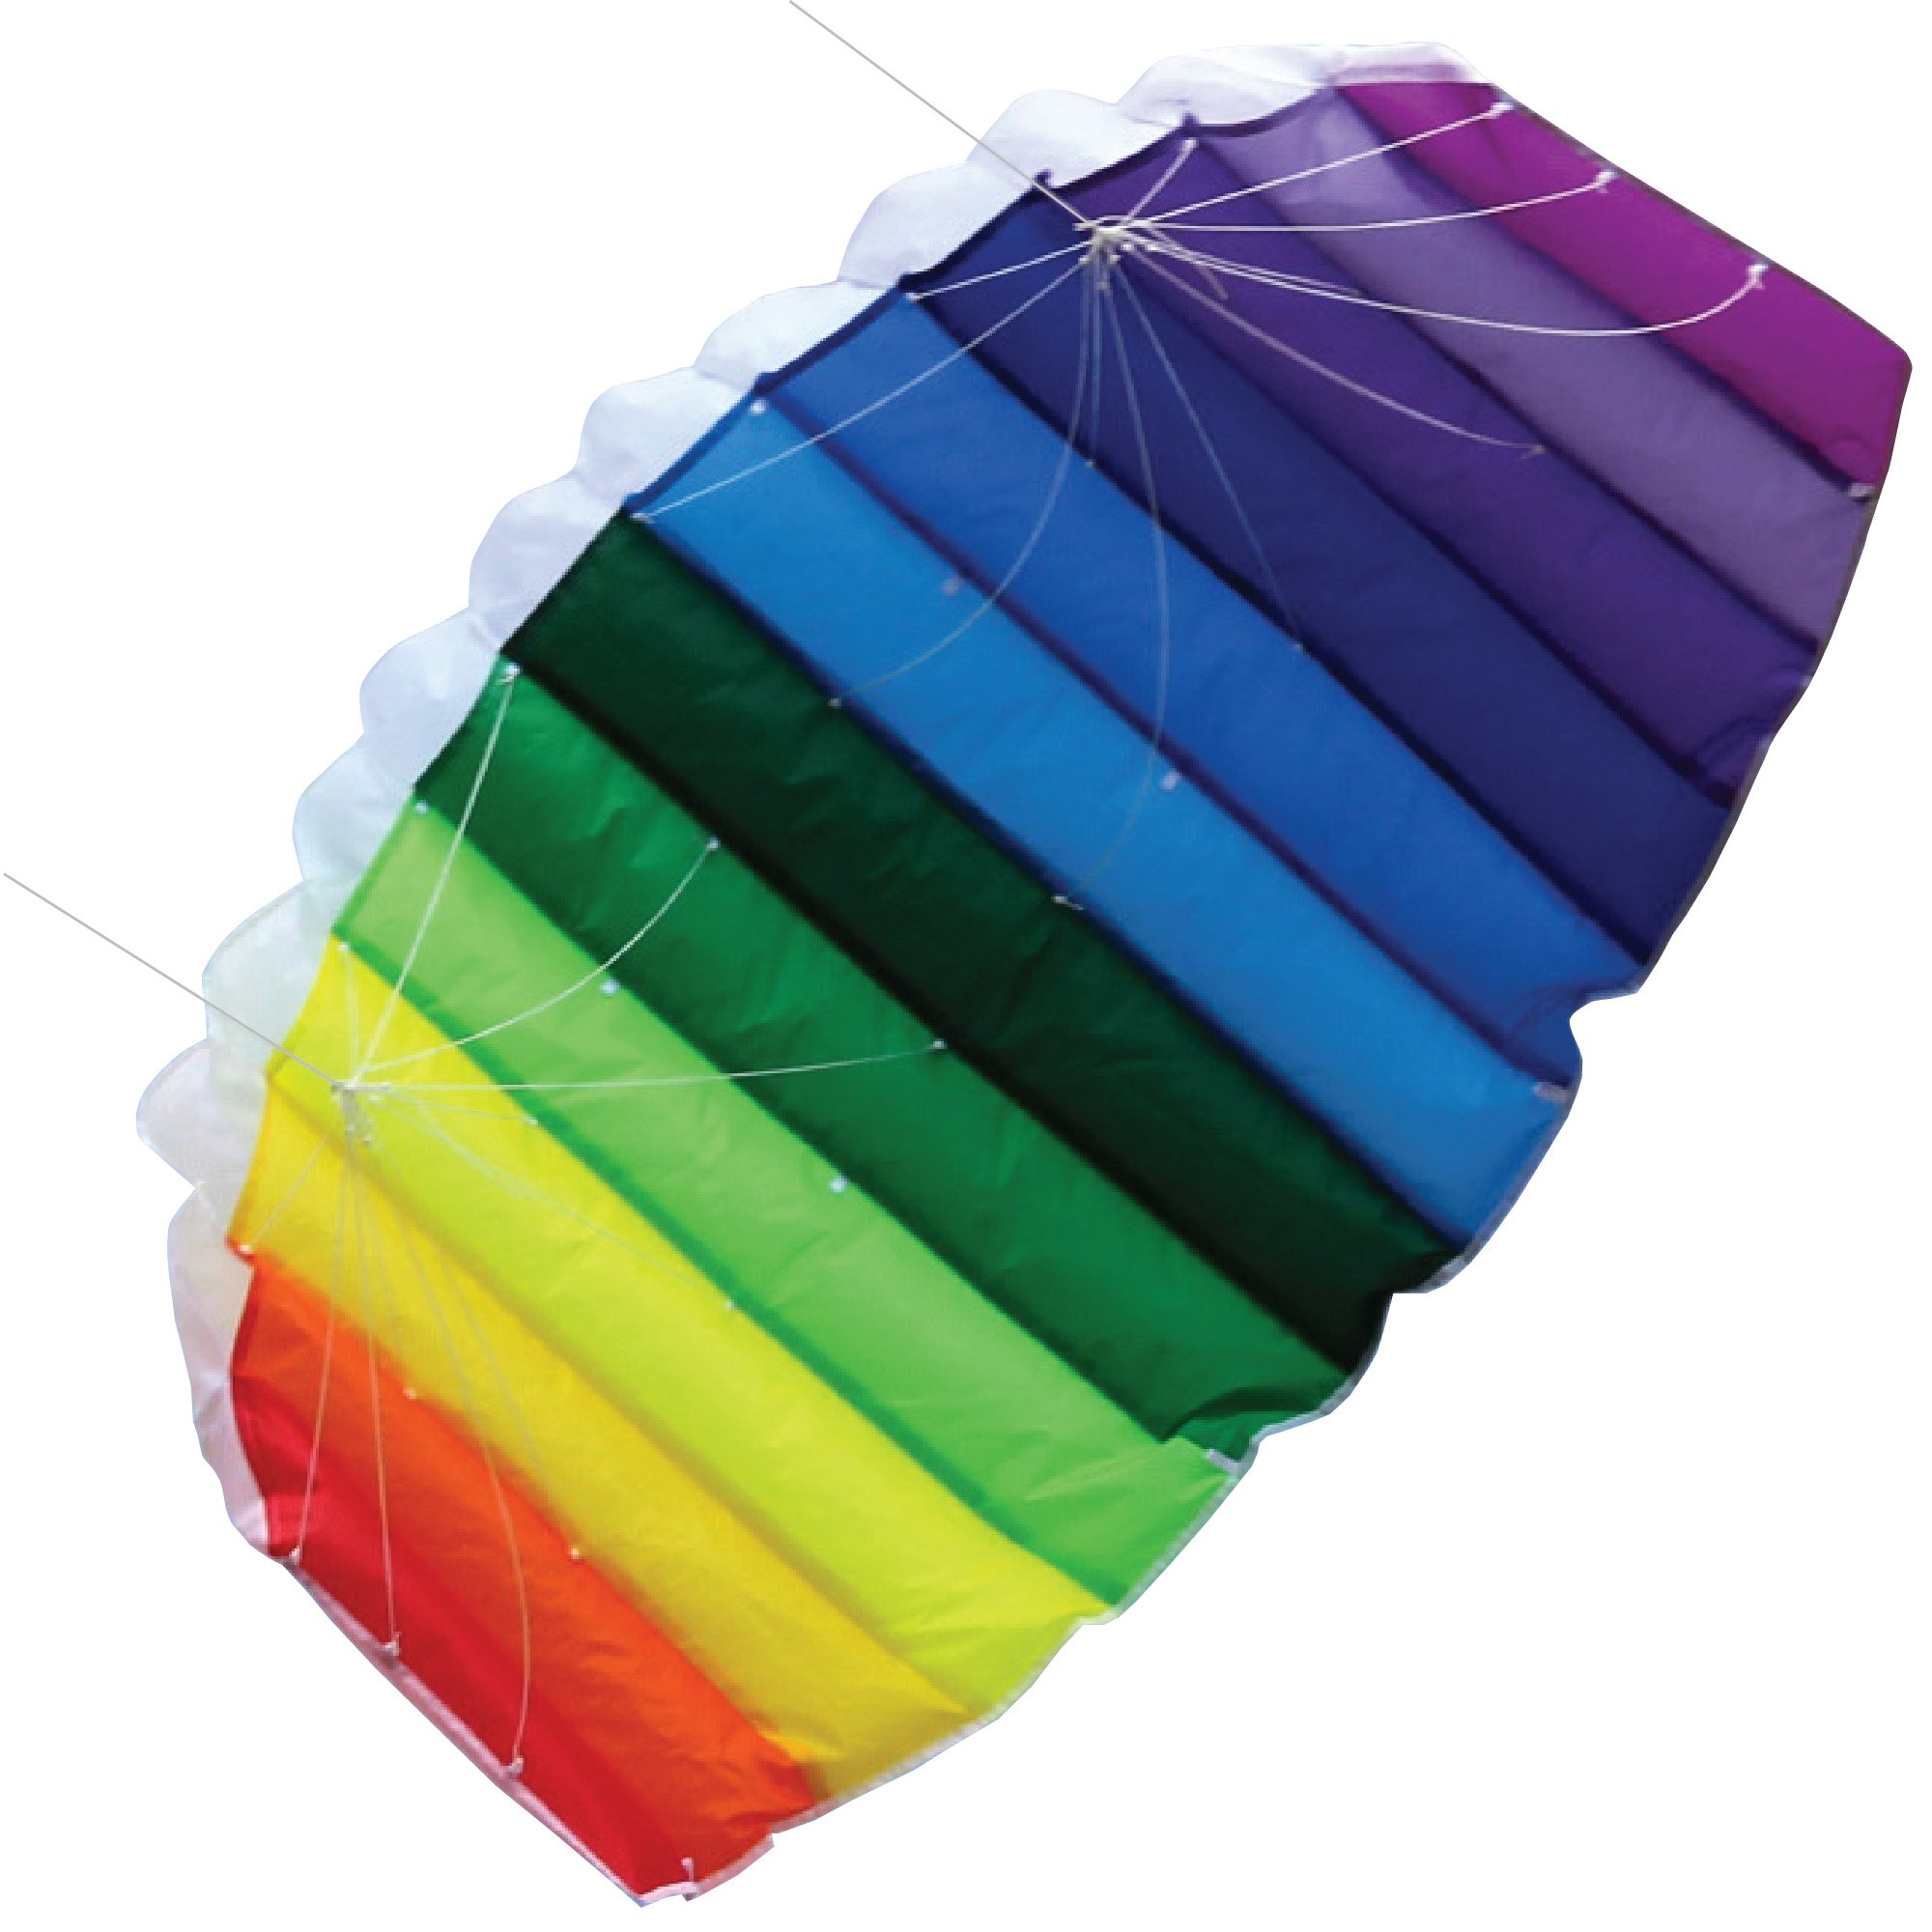 Moon Glow Sports AIRFOIL Stunt Sport Kite Dual-Line with Strings, Handles, Carry Bag, Winder, Free Flying Tips eBook, Easy Assembly, Rainbow Color